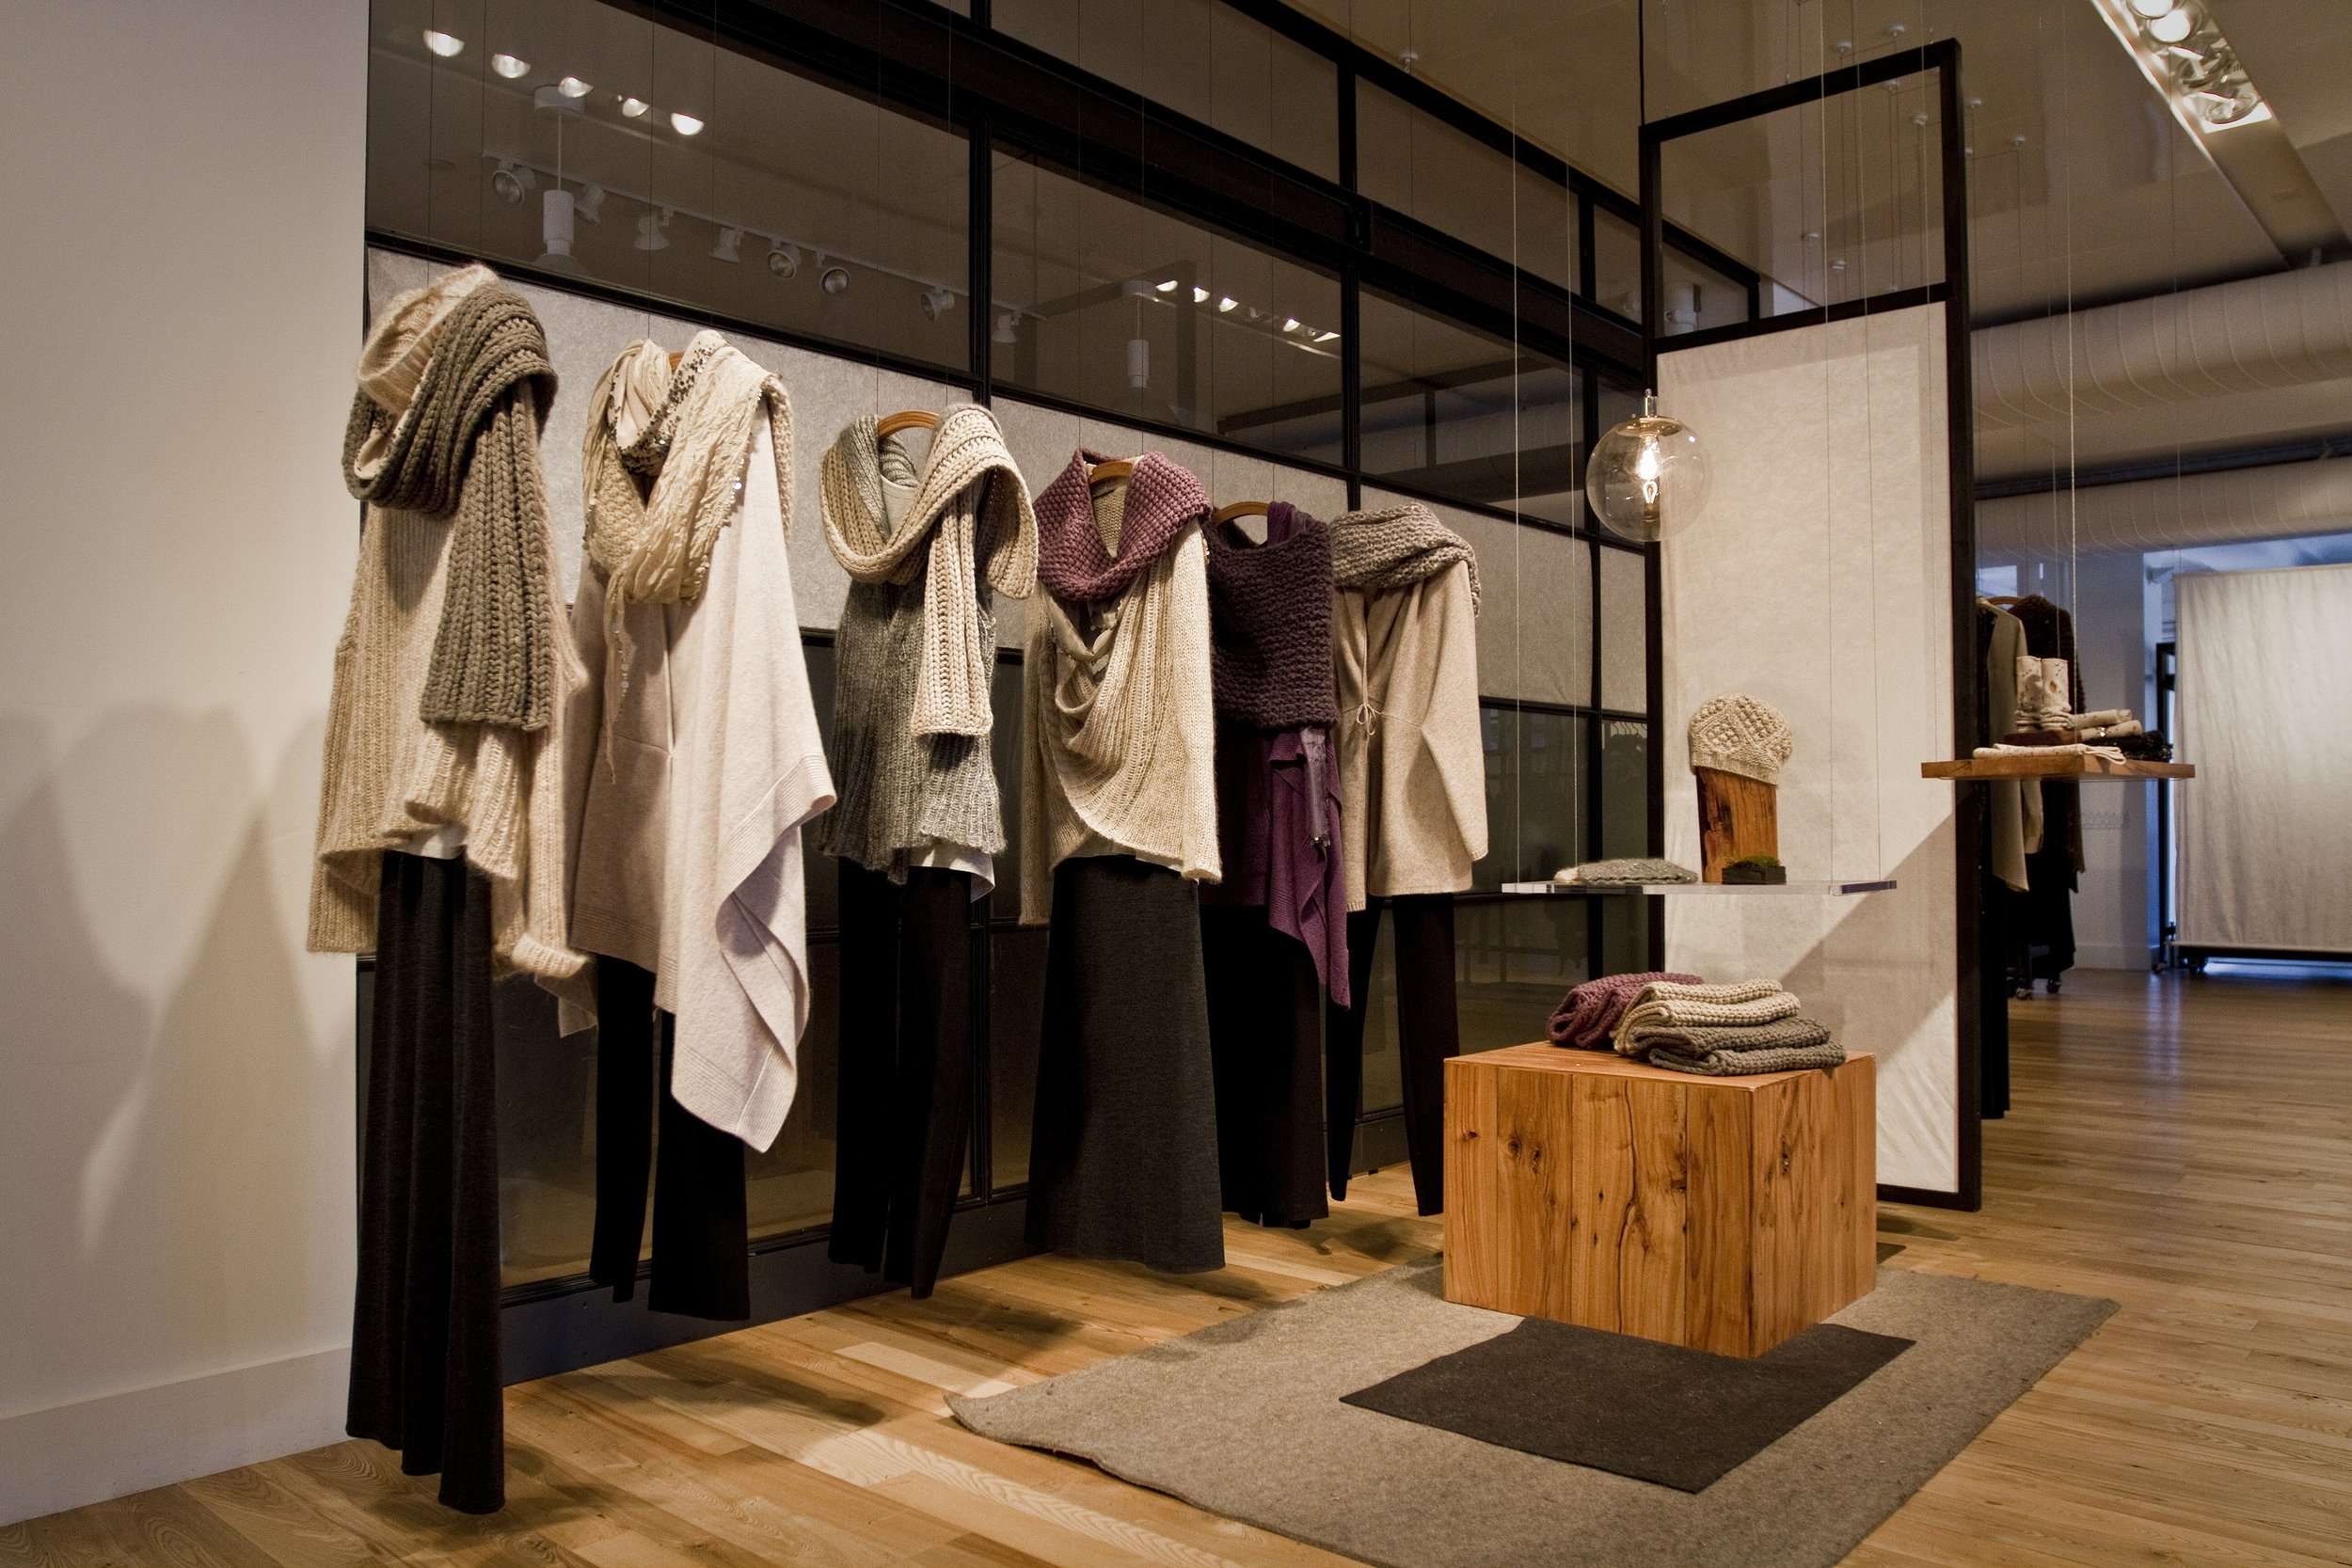 showroom design, Eileen Fisher Wholesale, New York